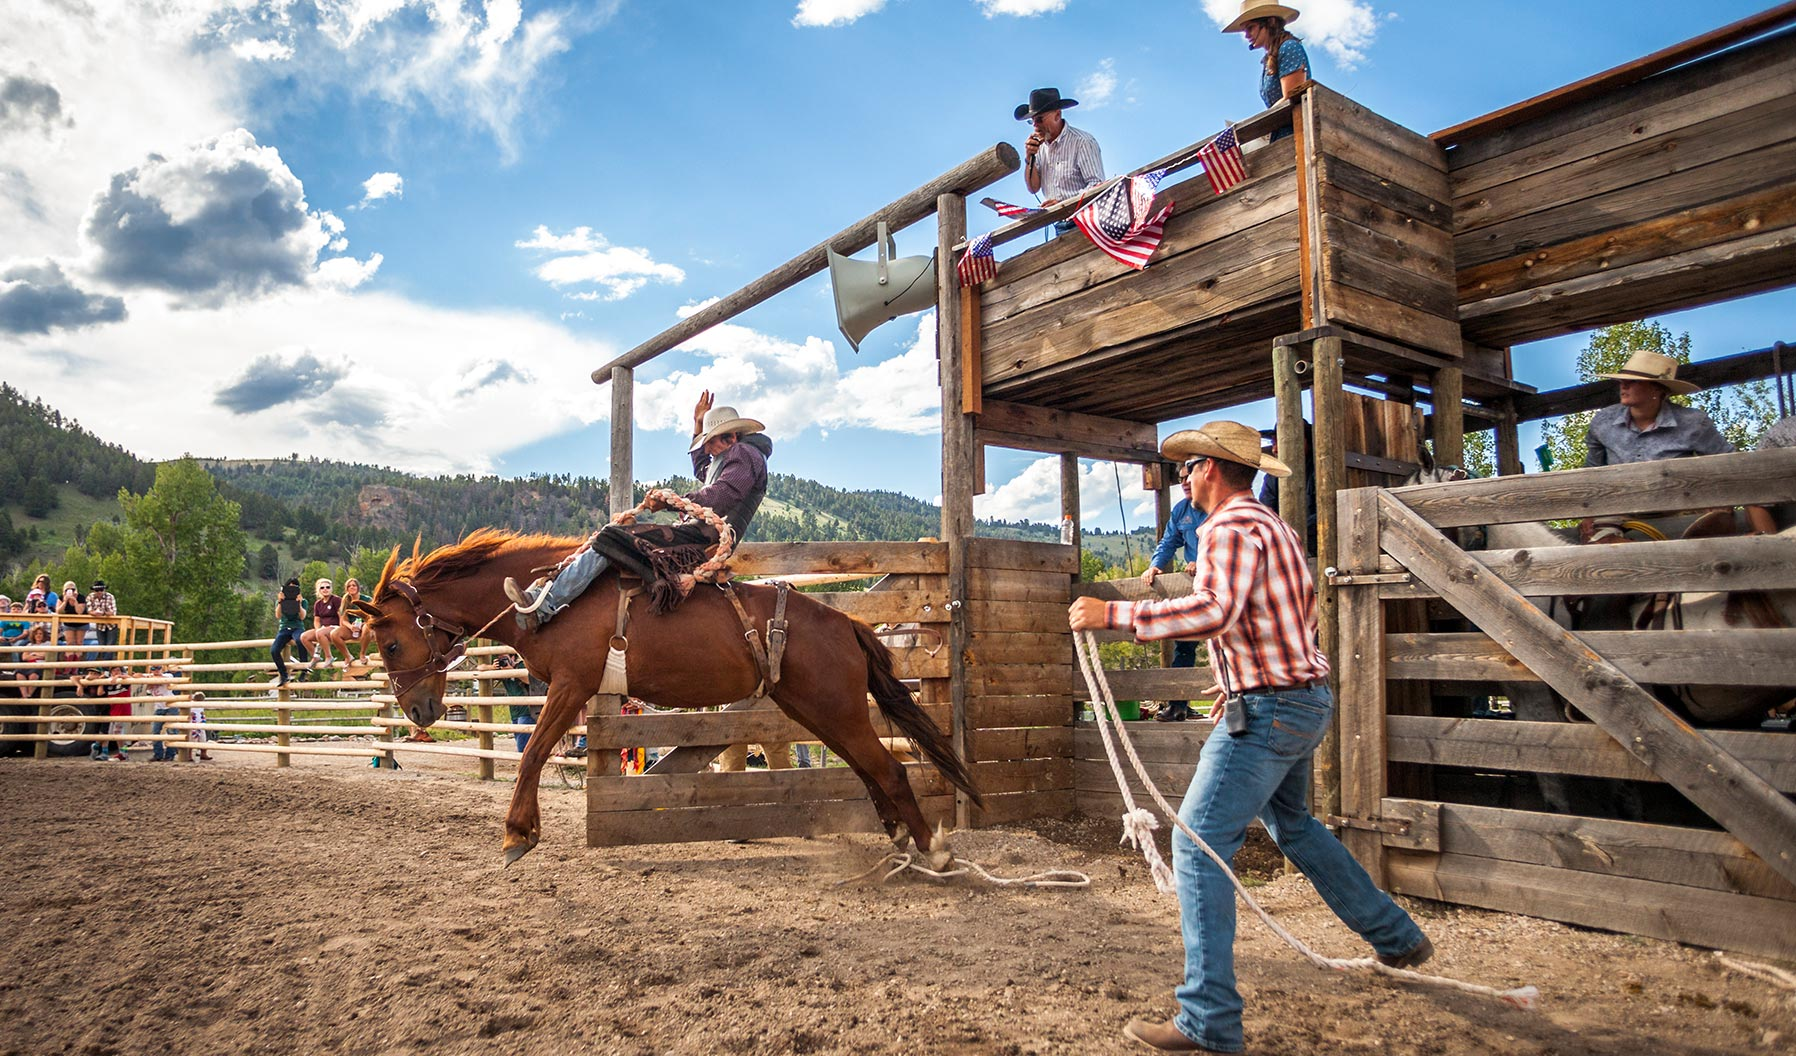 A rodeo and crowds at The Ranch At Rock Creek